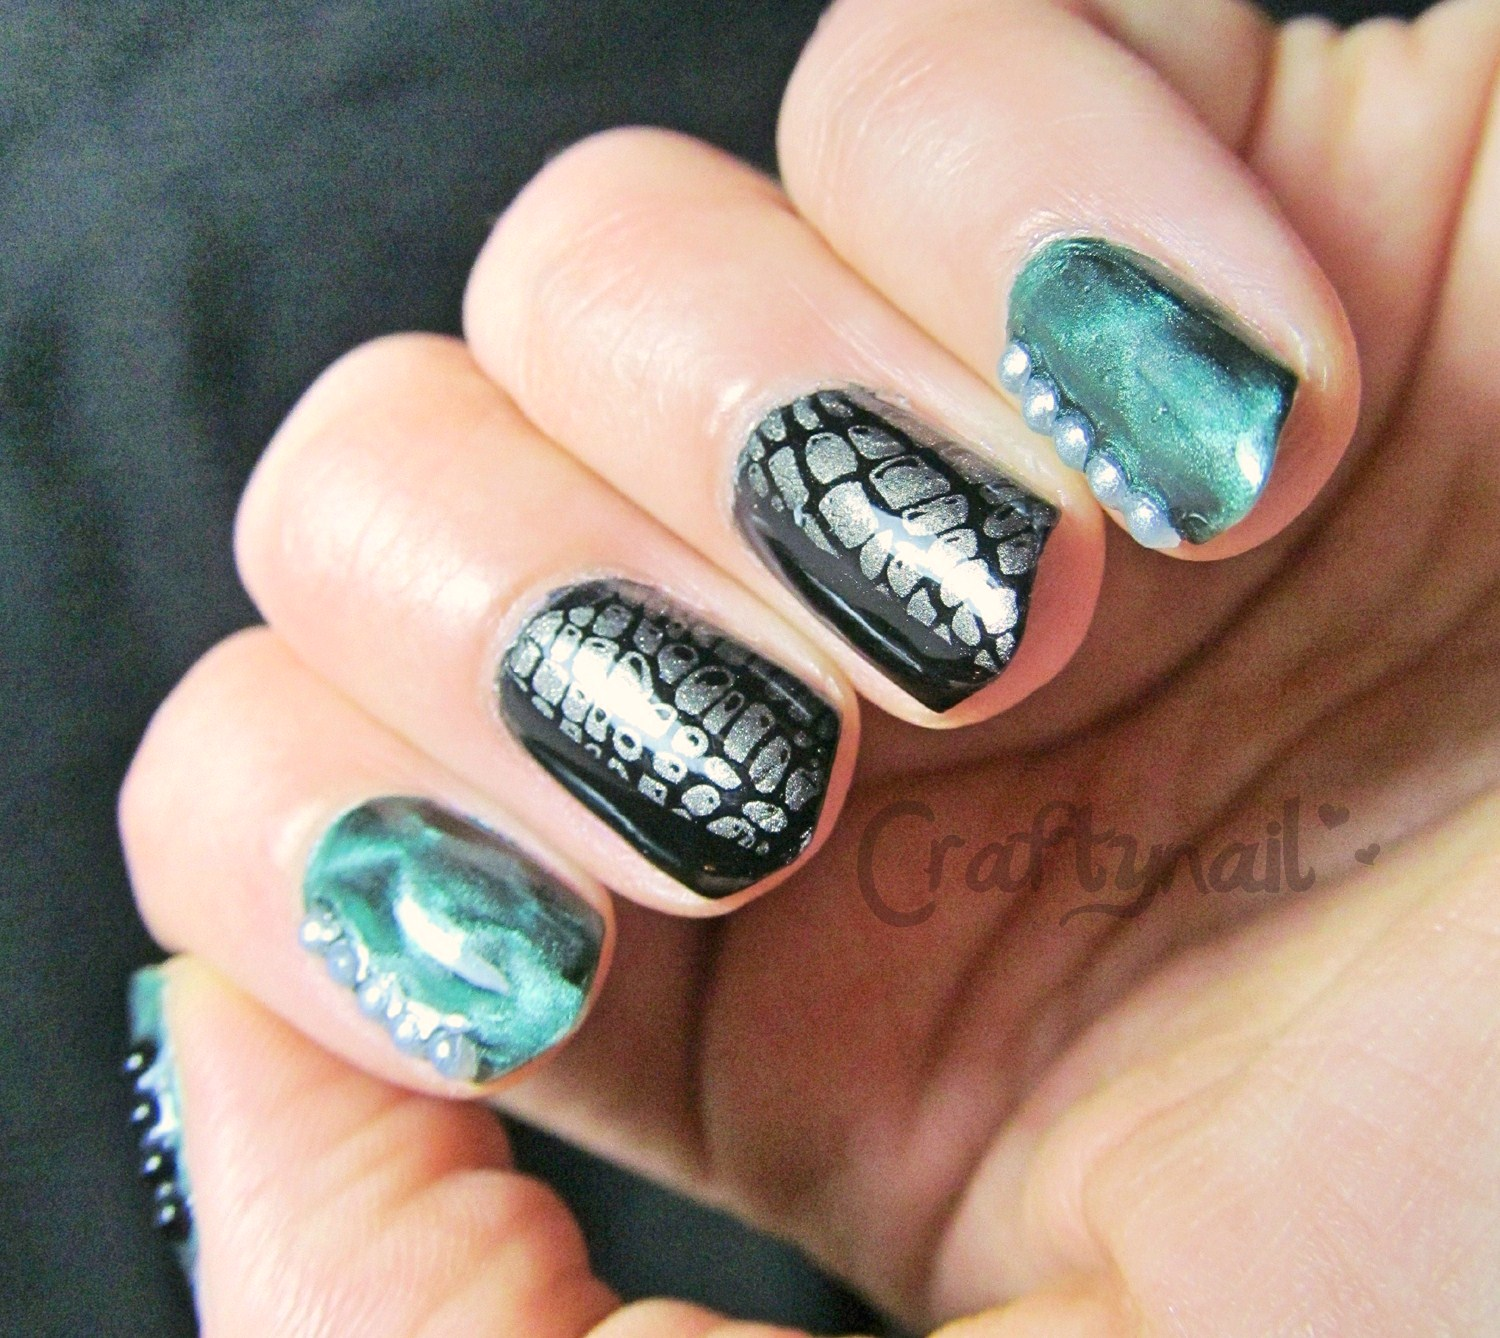 Sinfully Magnetic | Craftynail